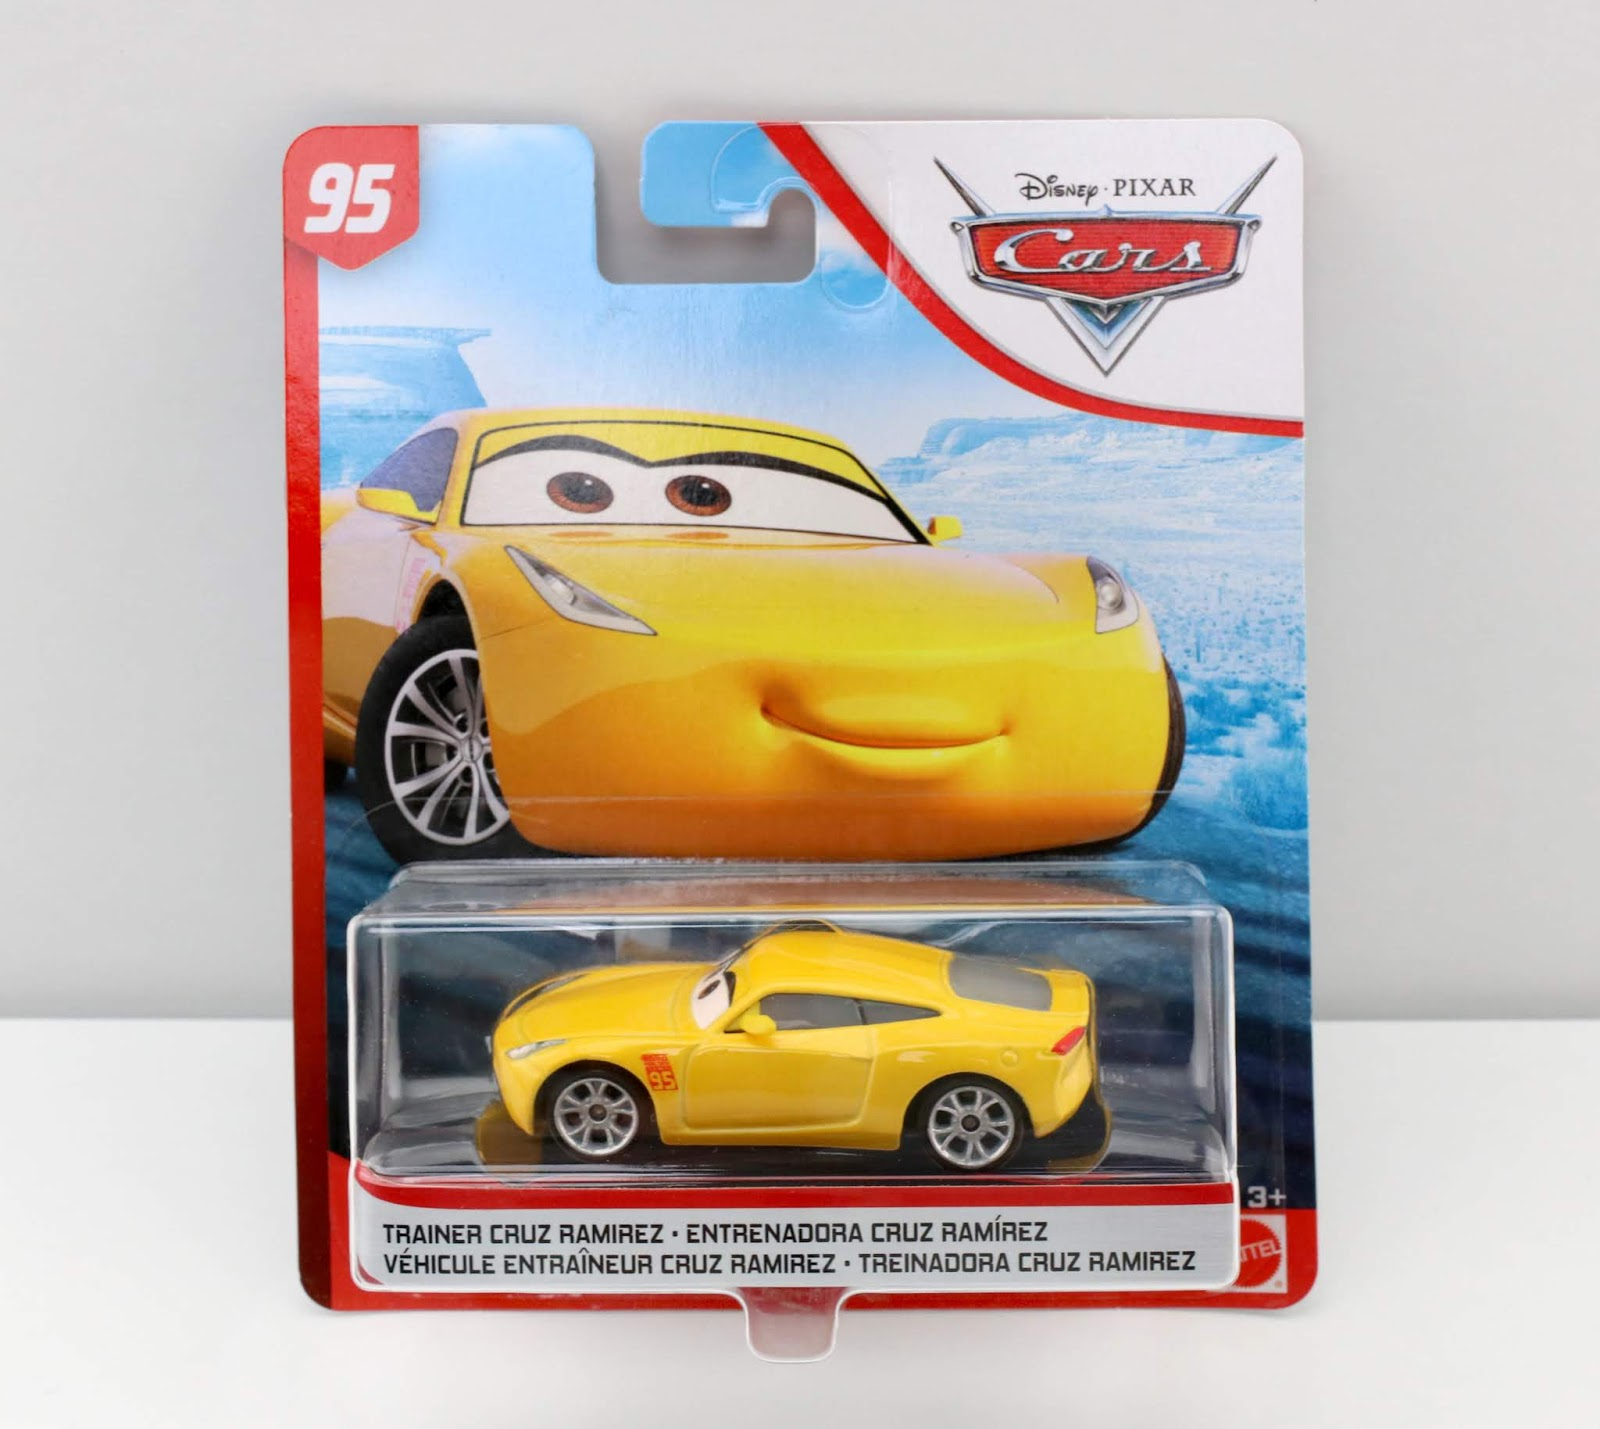 Cars 3 Trainer Cruz Ramirez diecast review